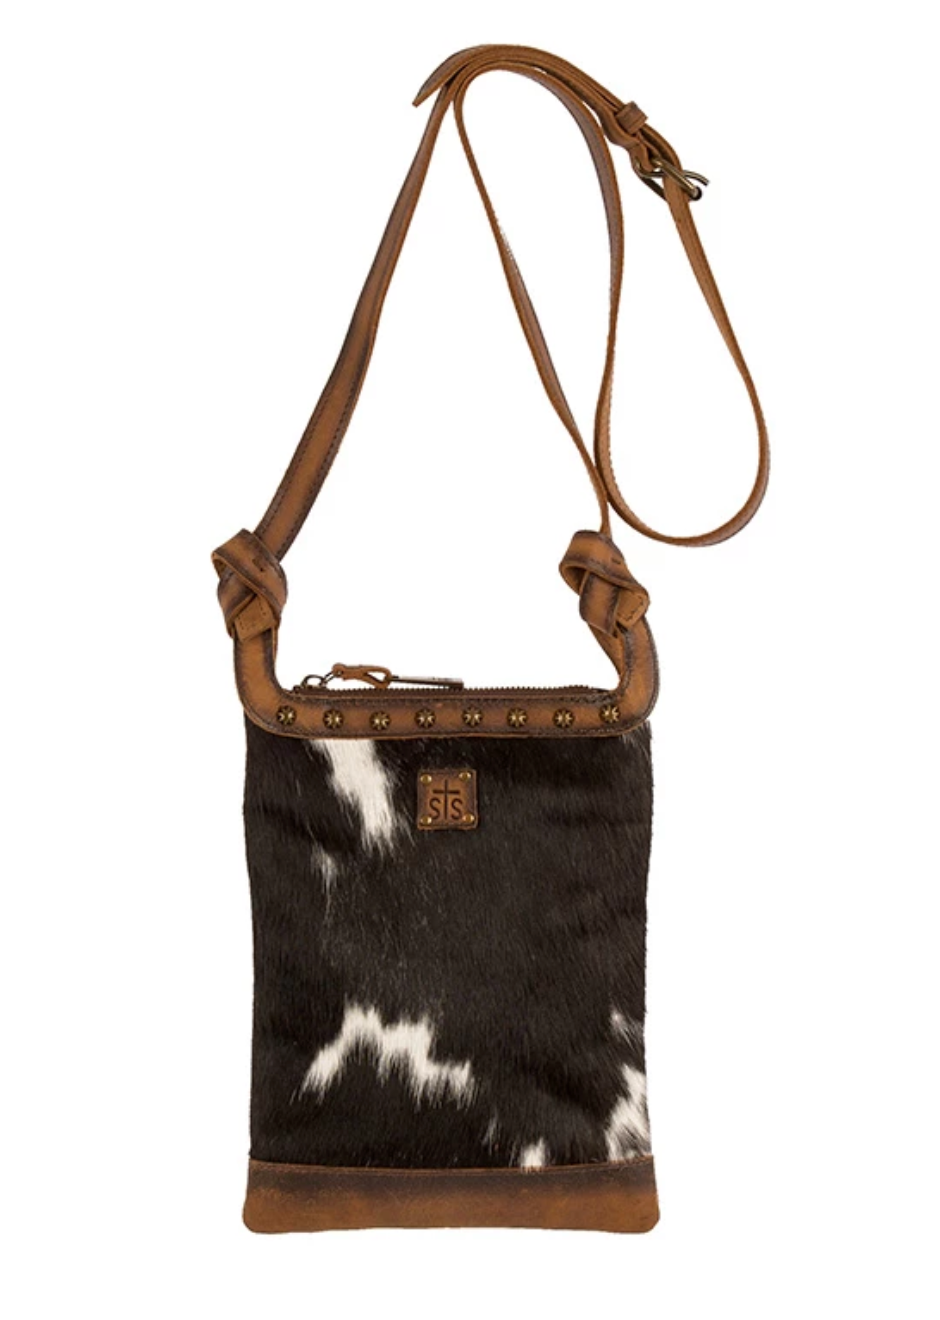 STS Ranchwear Classic Cowhide Crossbody WOMEN - Accessories - Handbags - Crossbody bags STS Ranchwear Teskeys